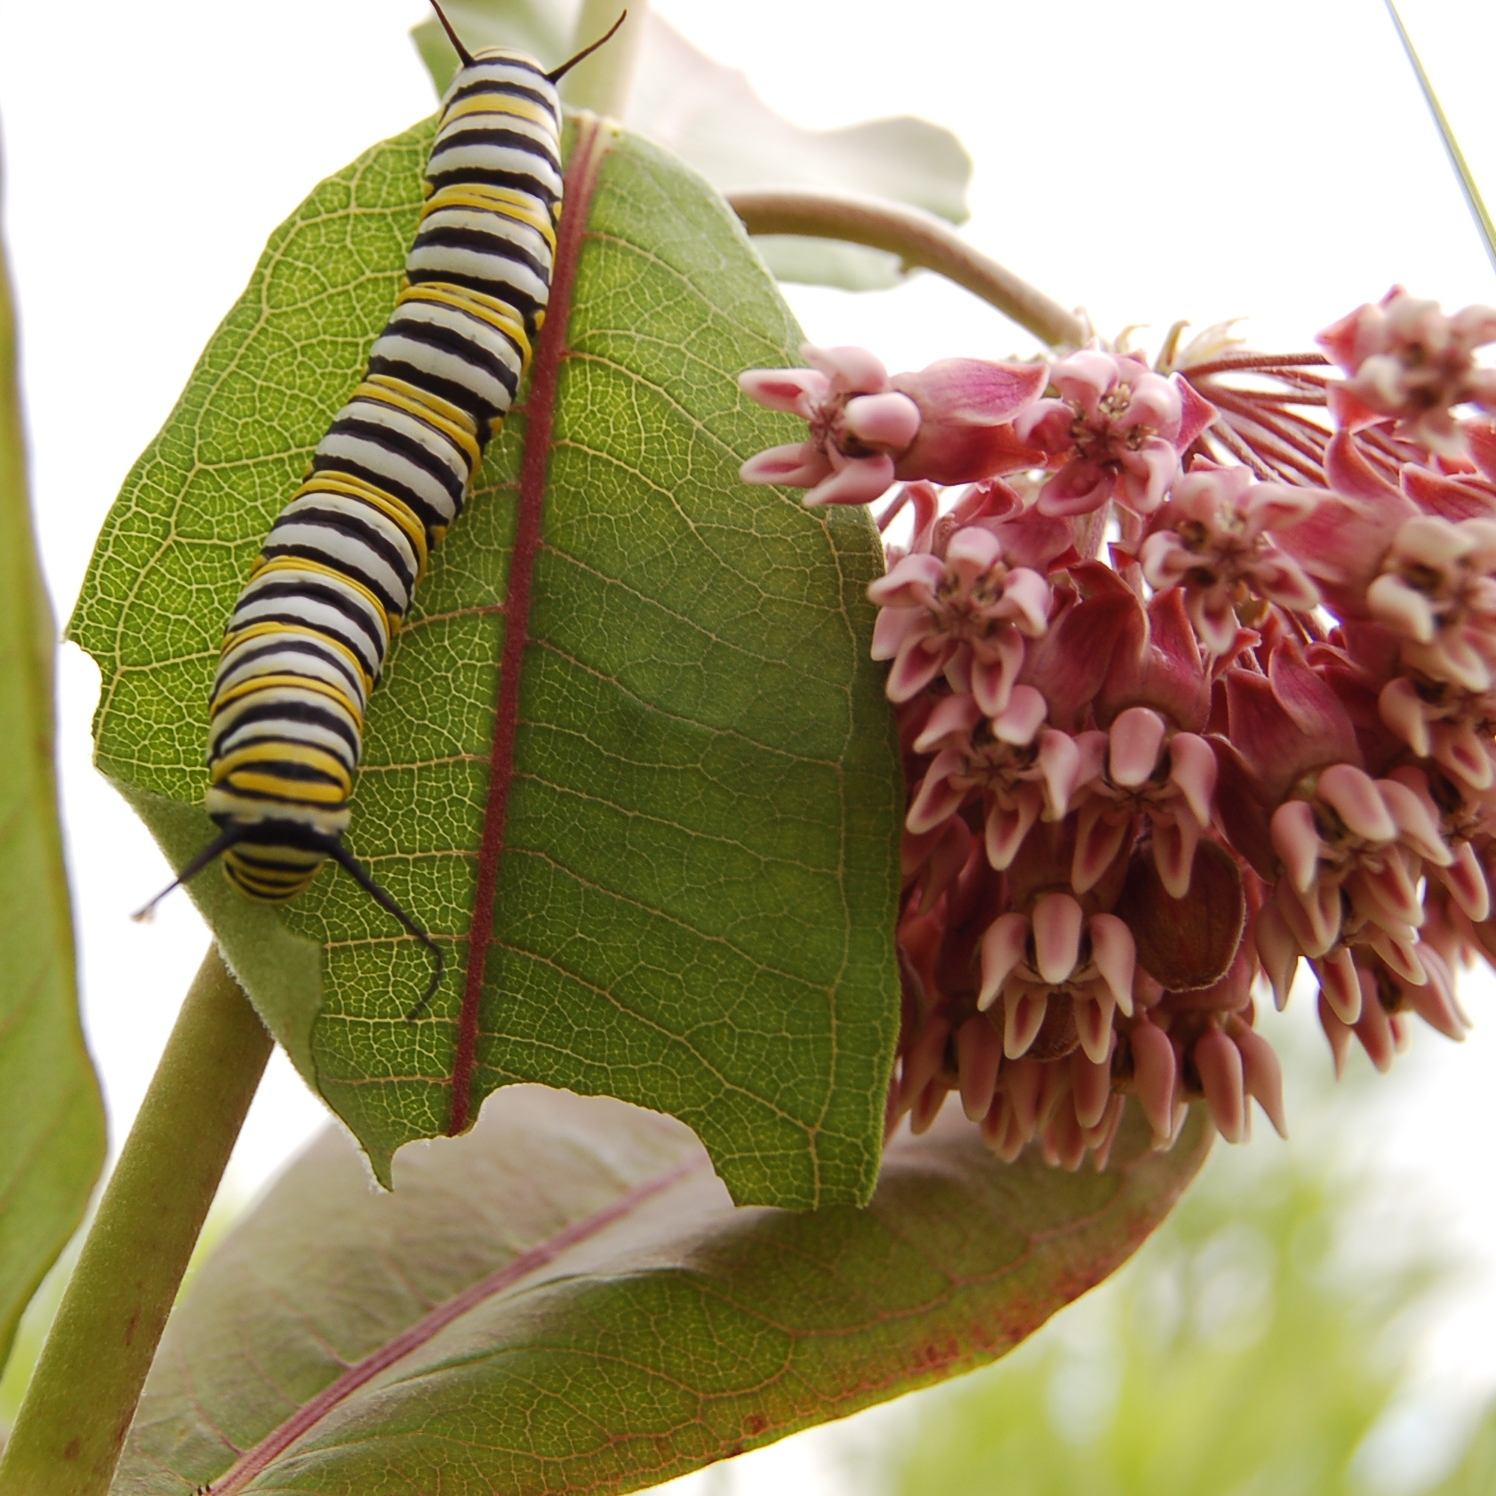 Emily Meier_Monarch Caterpillar on Milkweed.jpg